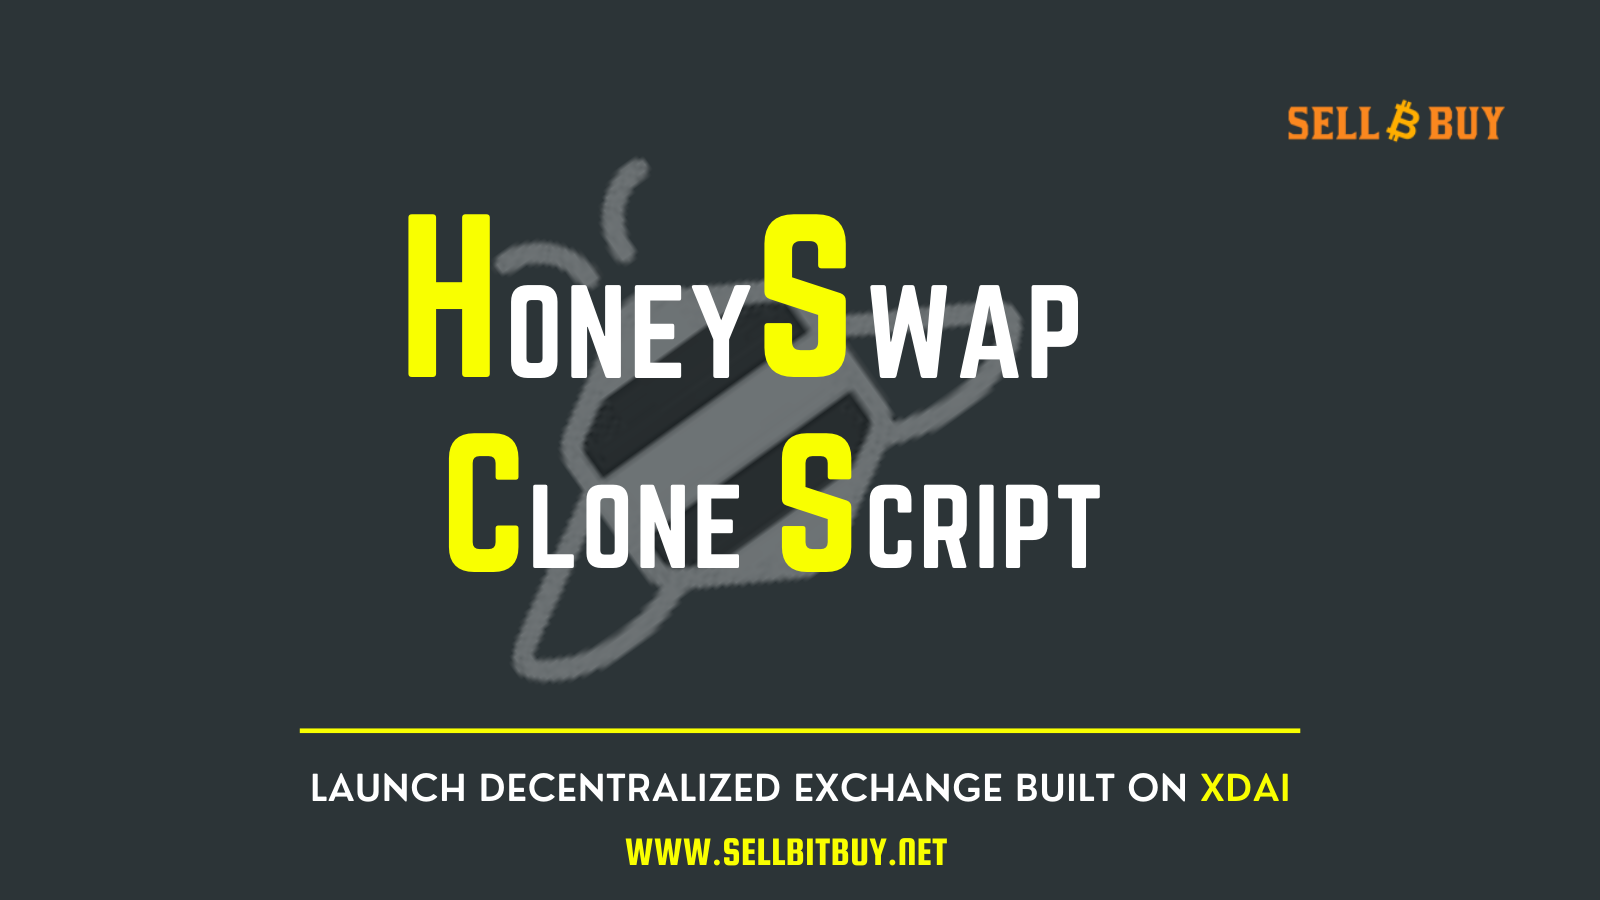 HoneySwap Clone Script - Build a decentralized exchange like HoneySwap On xDai